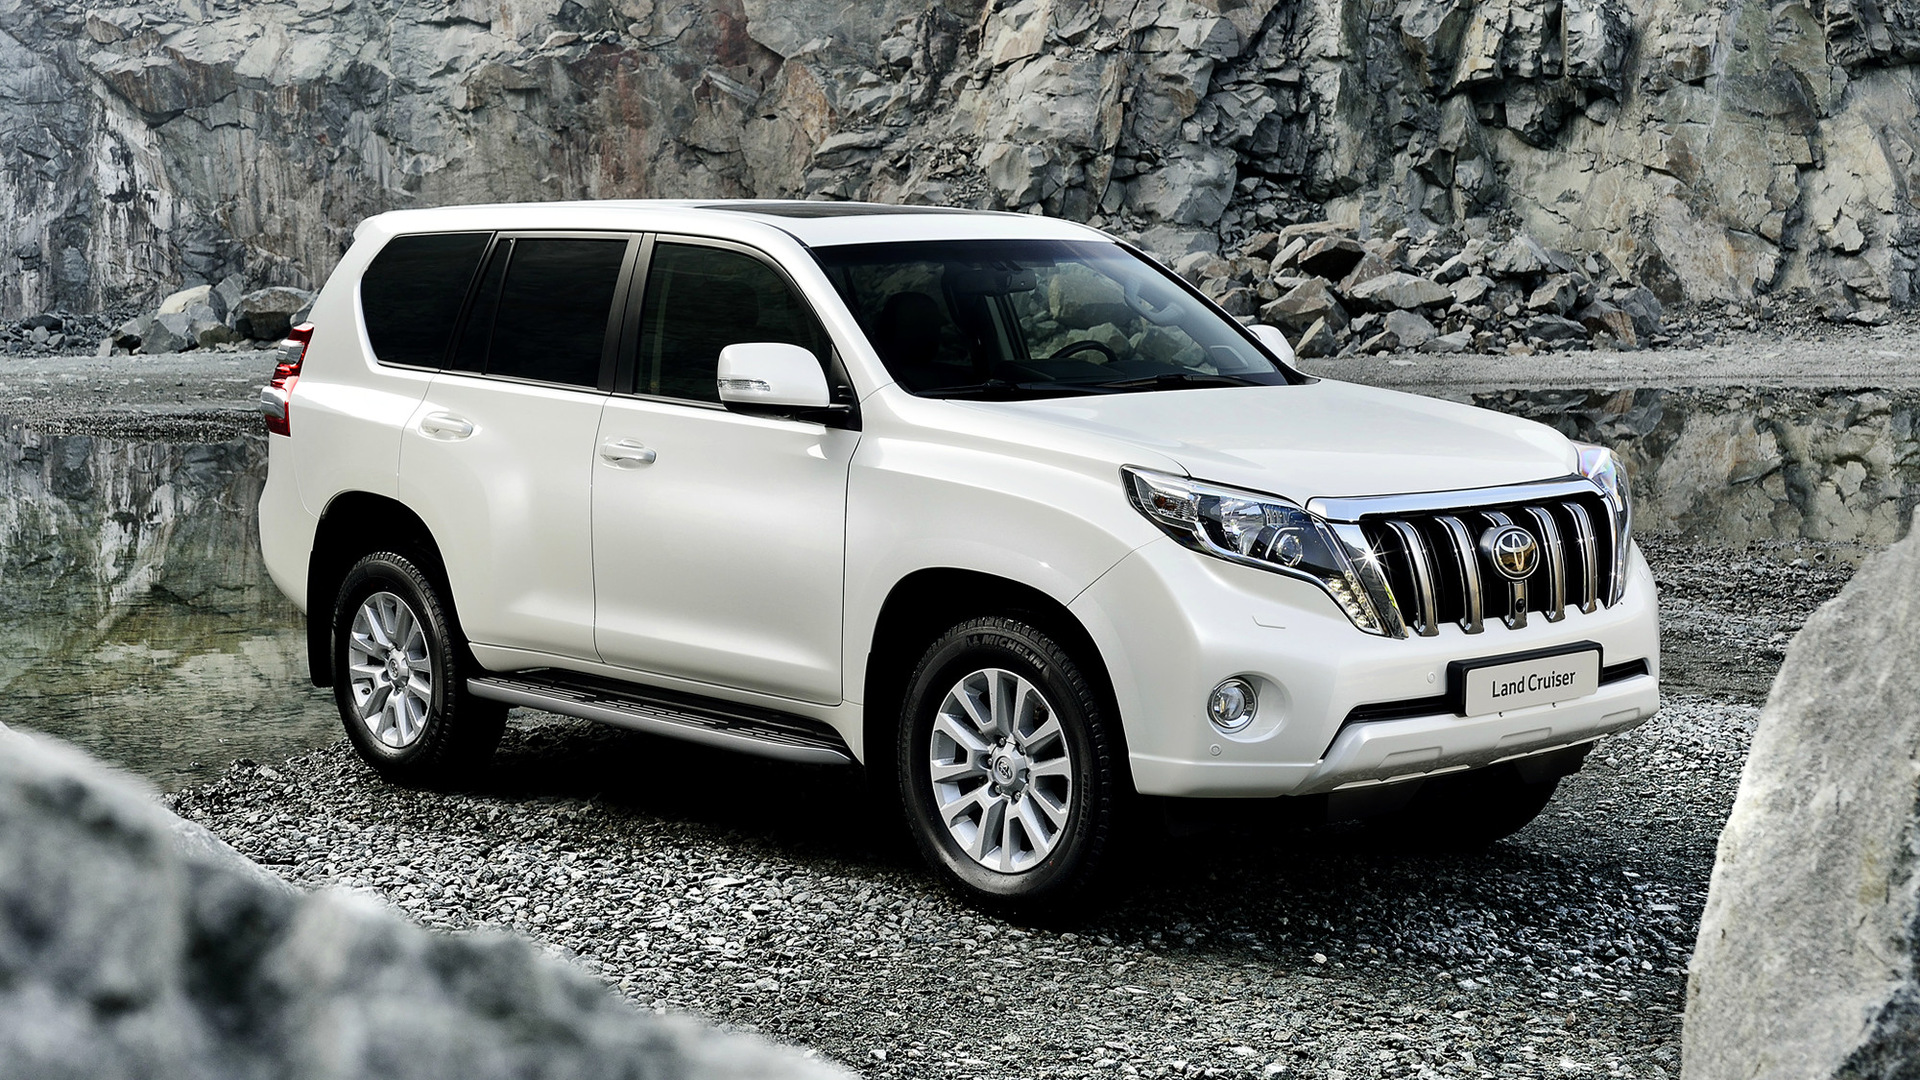 2013 Toyota Land Cruiser Wallpapers And Hd Images Car